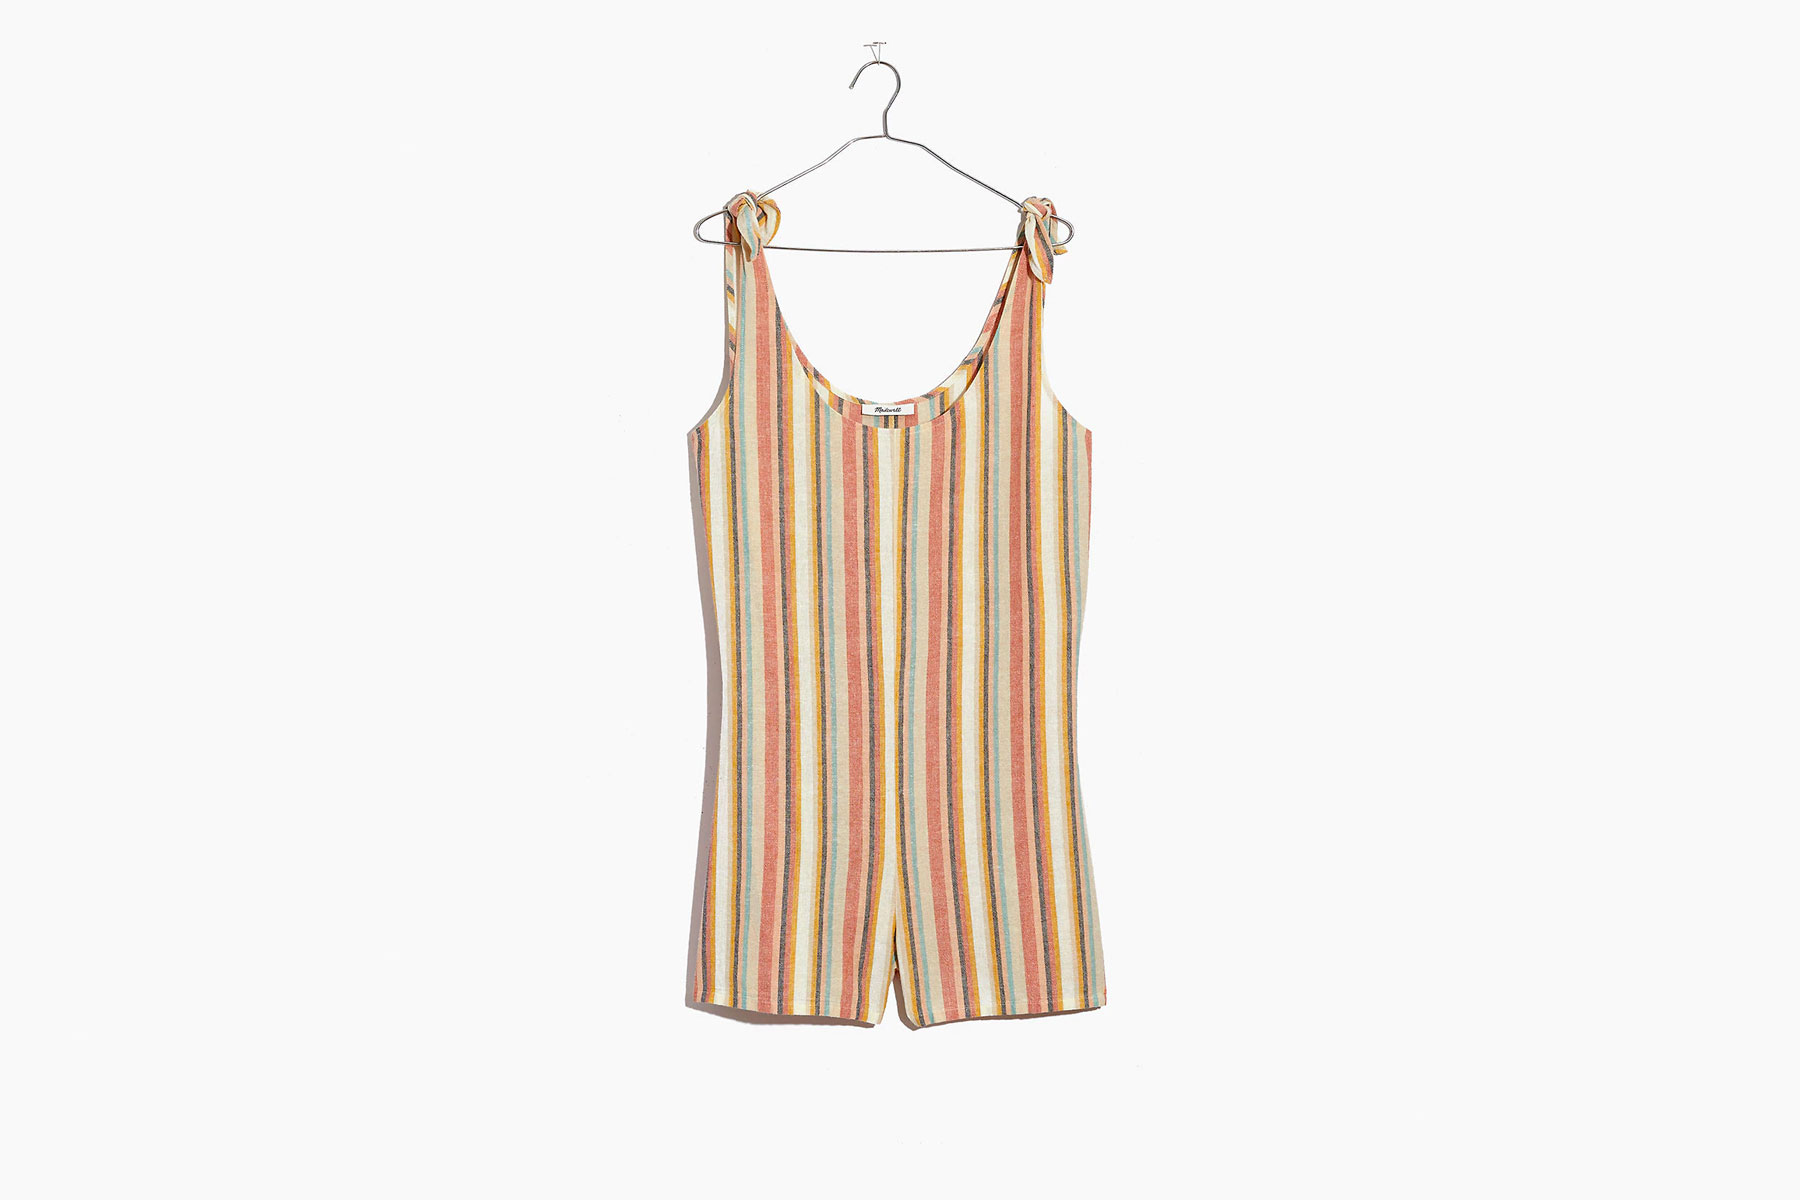 Madewell Tie-Strap Cover-up Romper